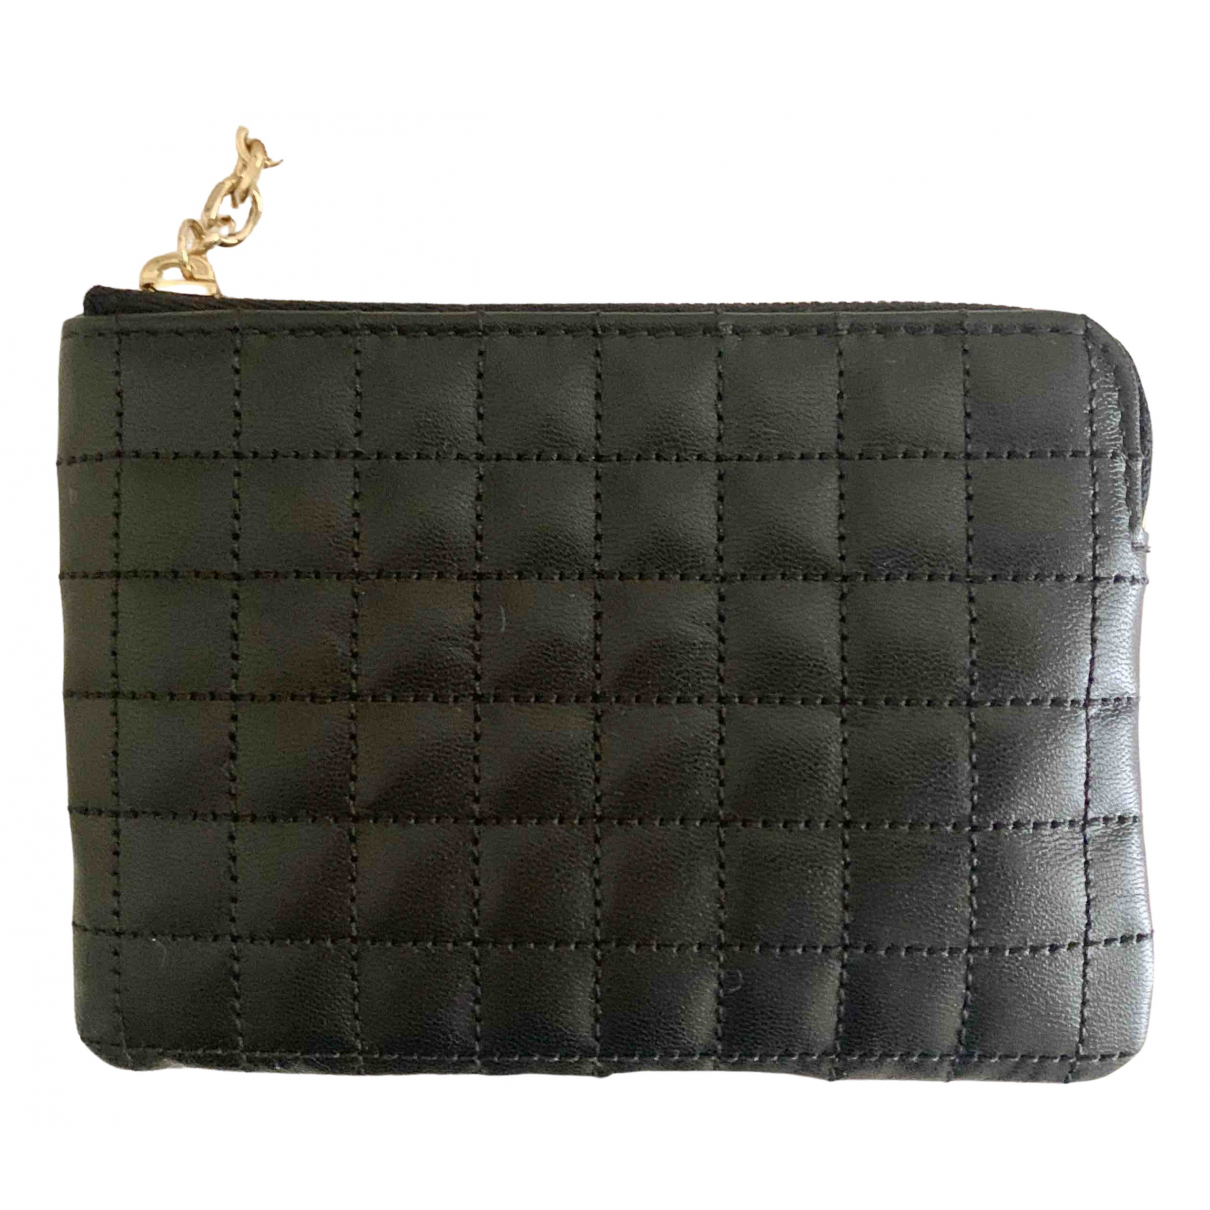 Celine \N Black Leather Purses, wallet & cases for Women \N